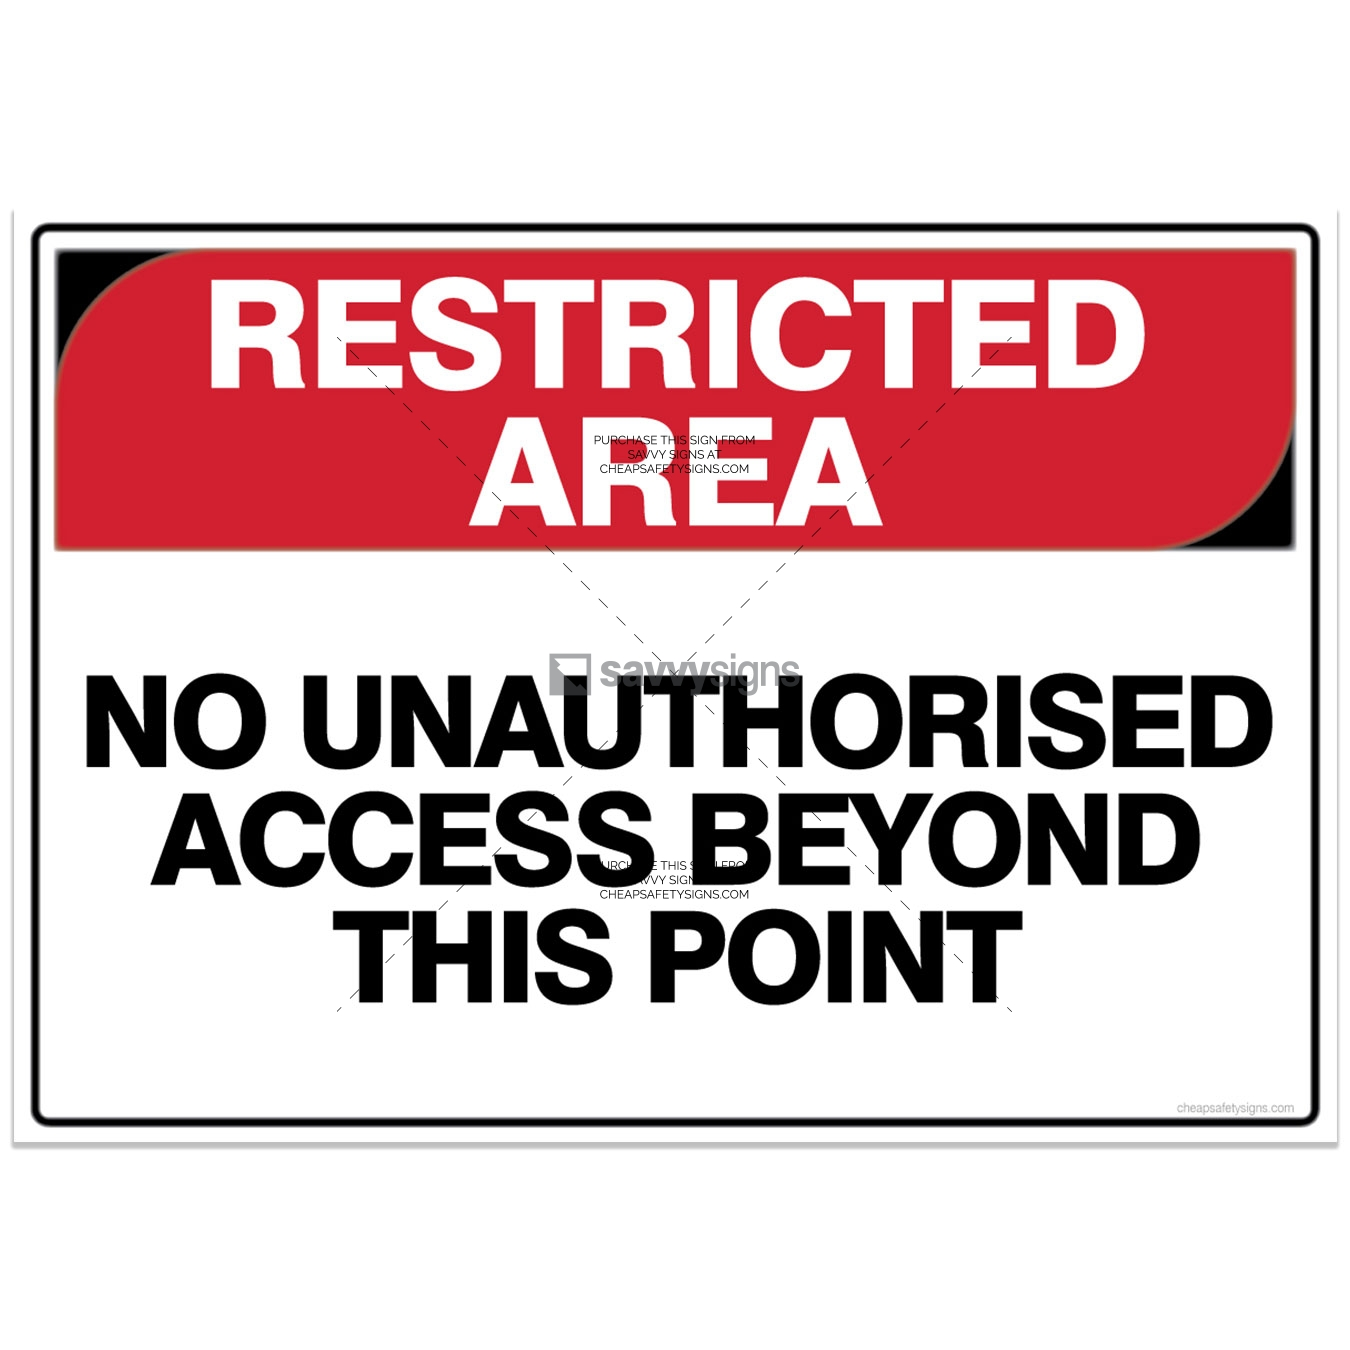 SSRES3029-RESTRICTED-AREA-Workplace-Safety-Signs_Savvy-Signs_v2